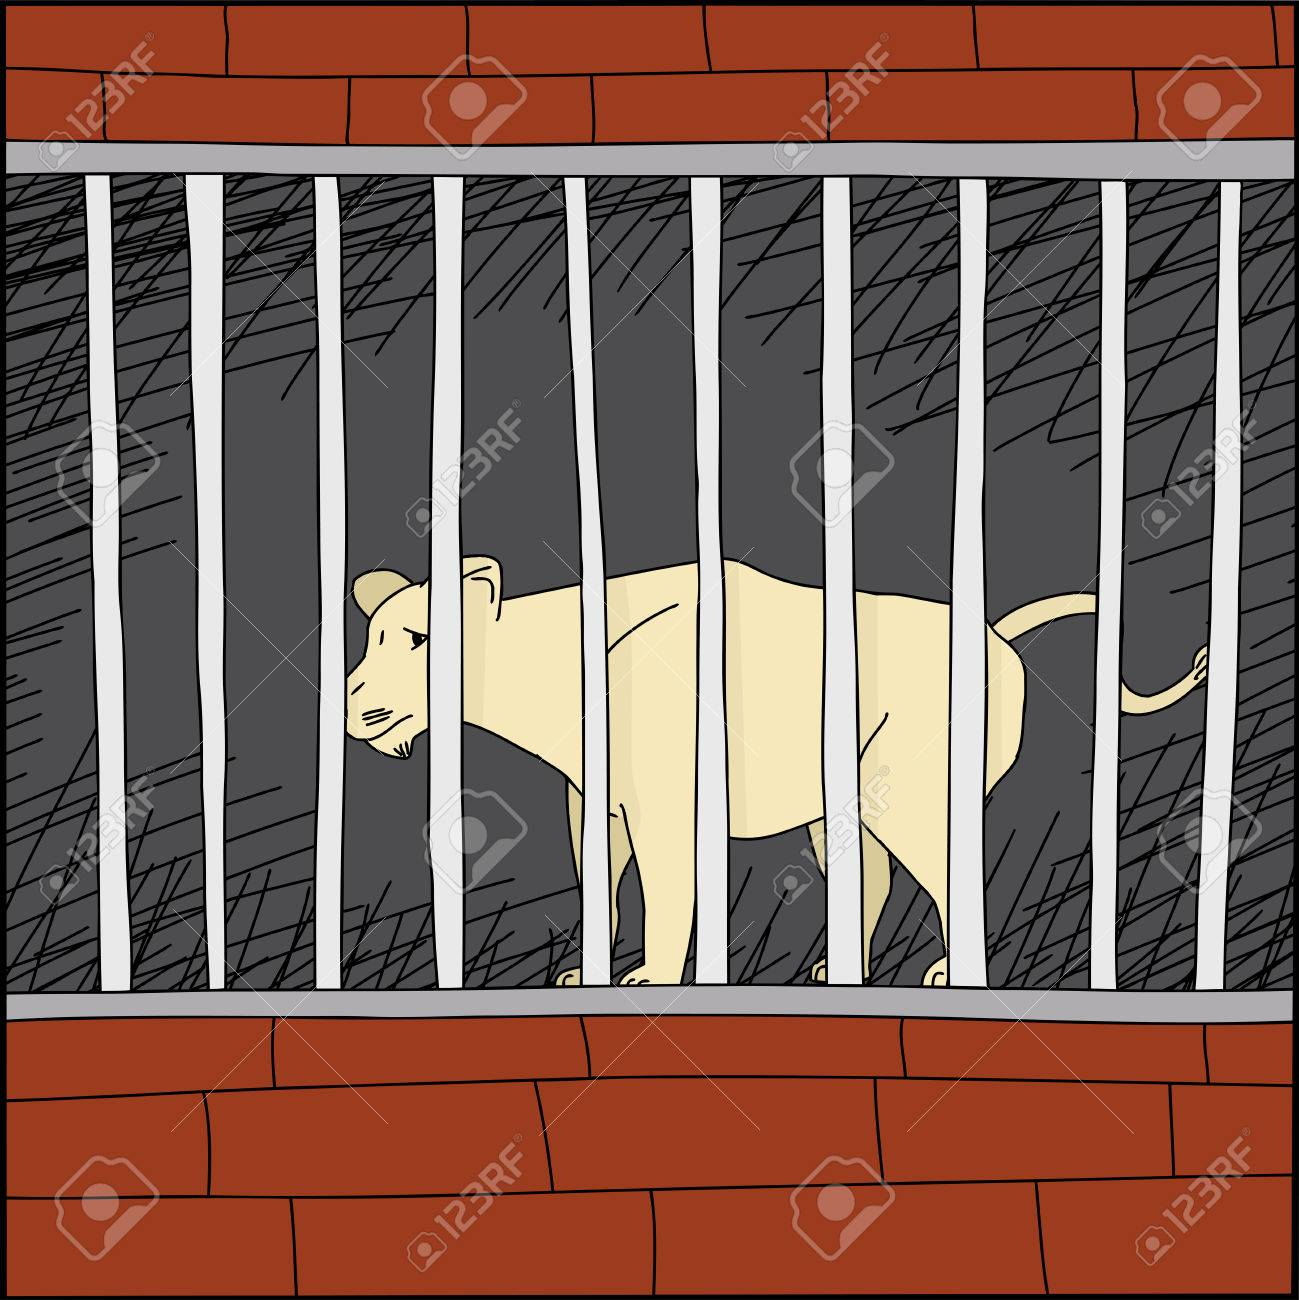 Sad Lion Cartoon Cartoon of Sad Lion Behind